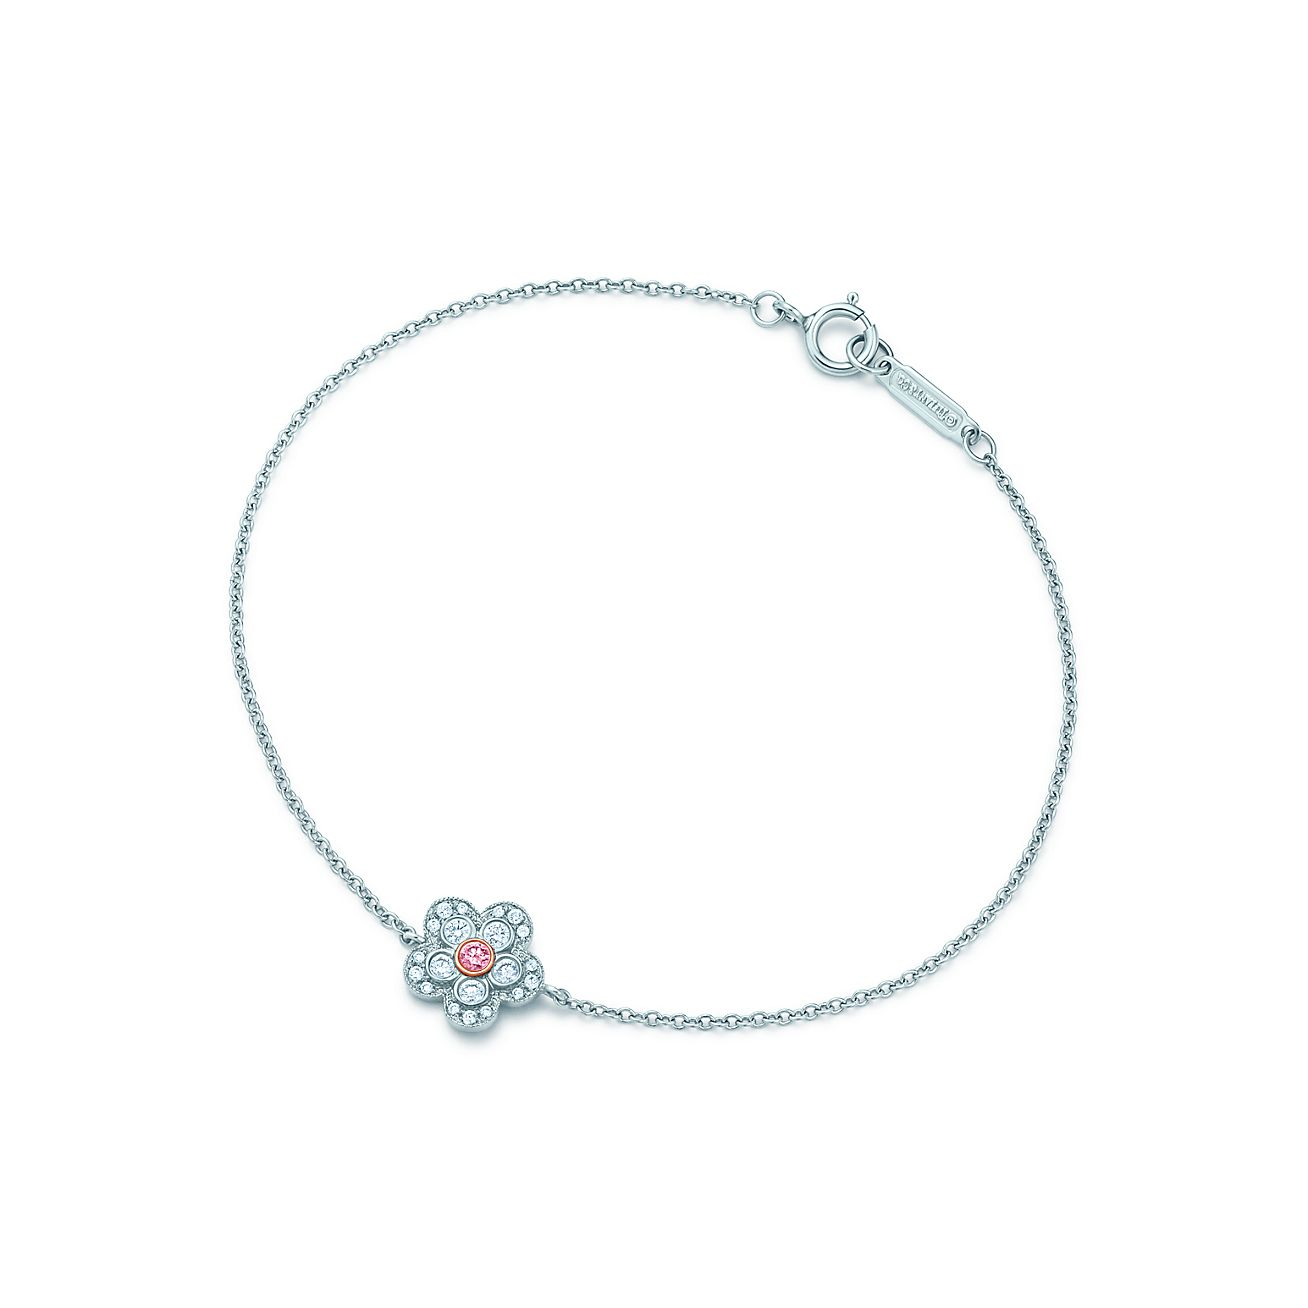 Tiffany Pink Diamond Flower Bracelet In Platinum And Rose